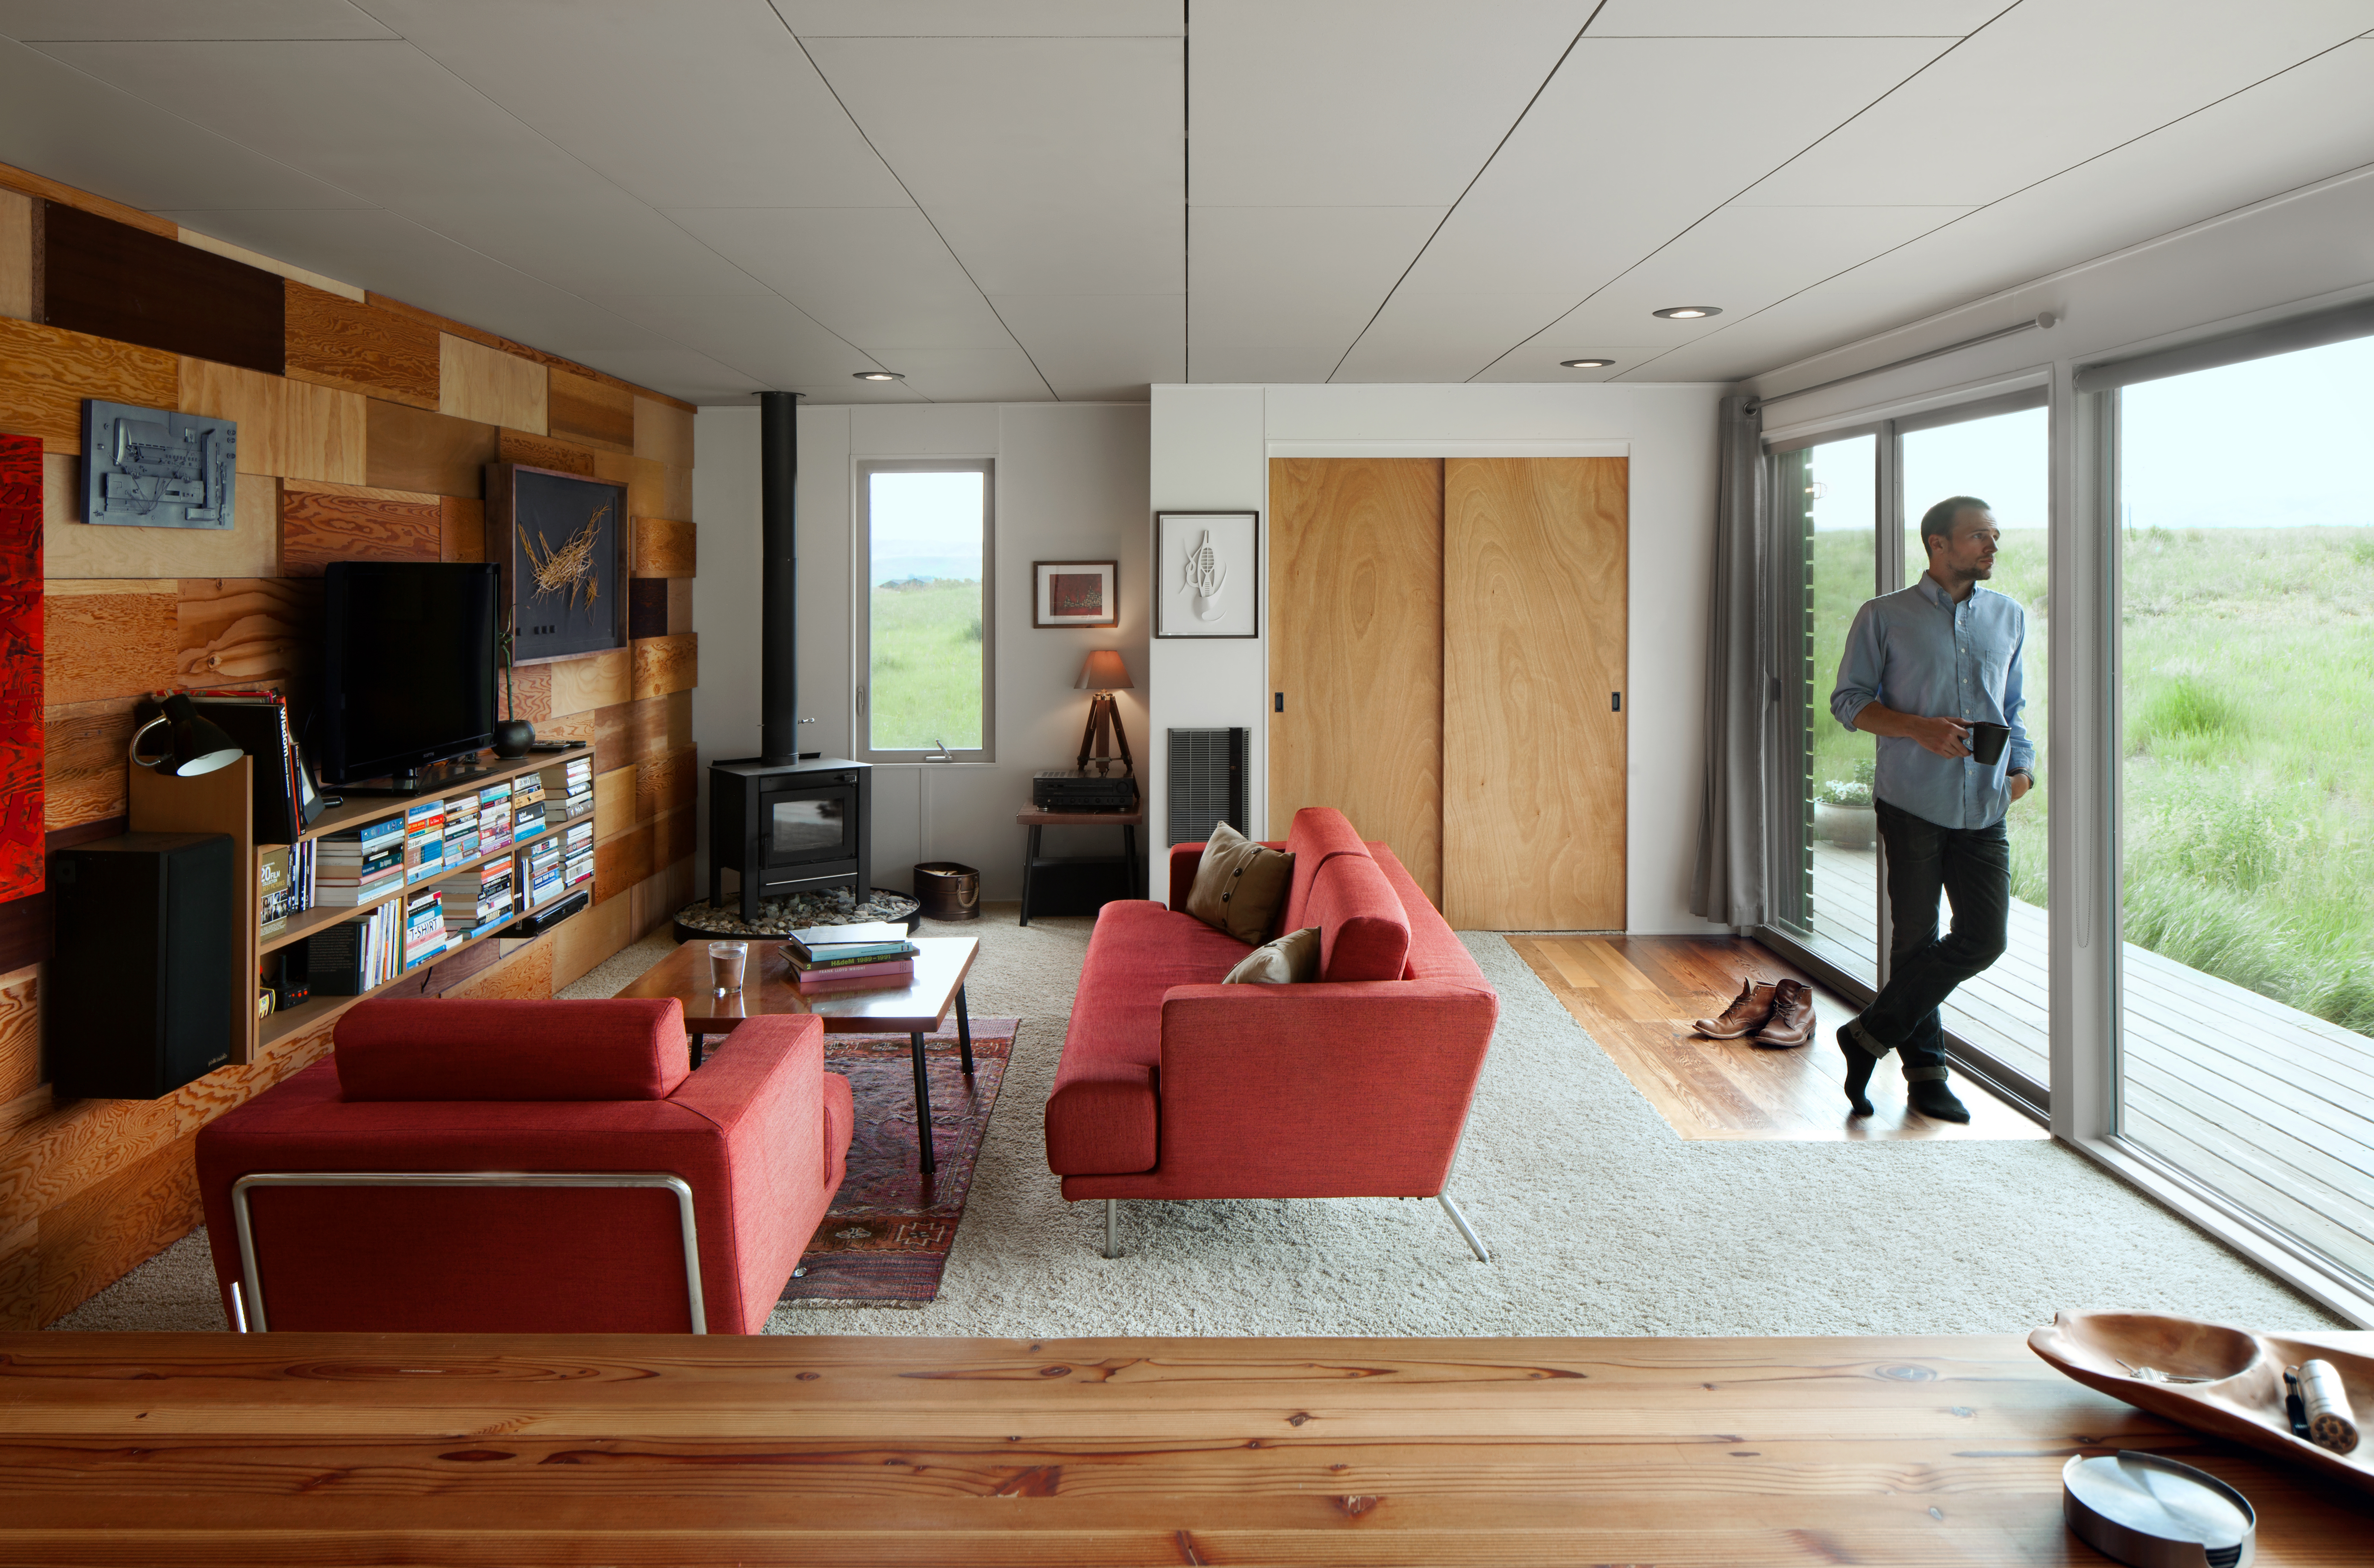 Handcrafted shipping container home asks $125K - Curbed